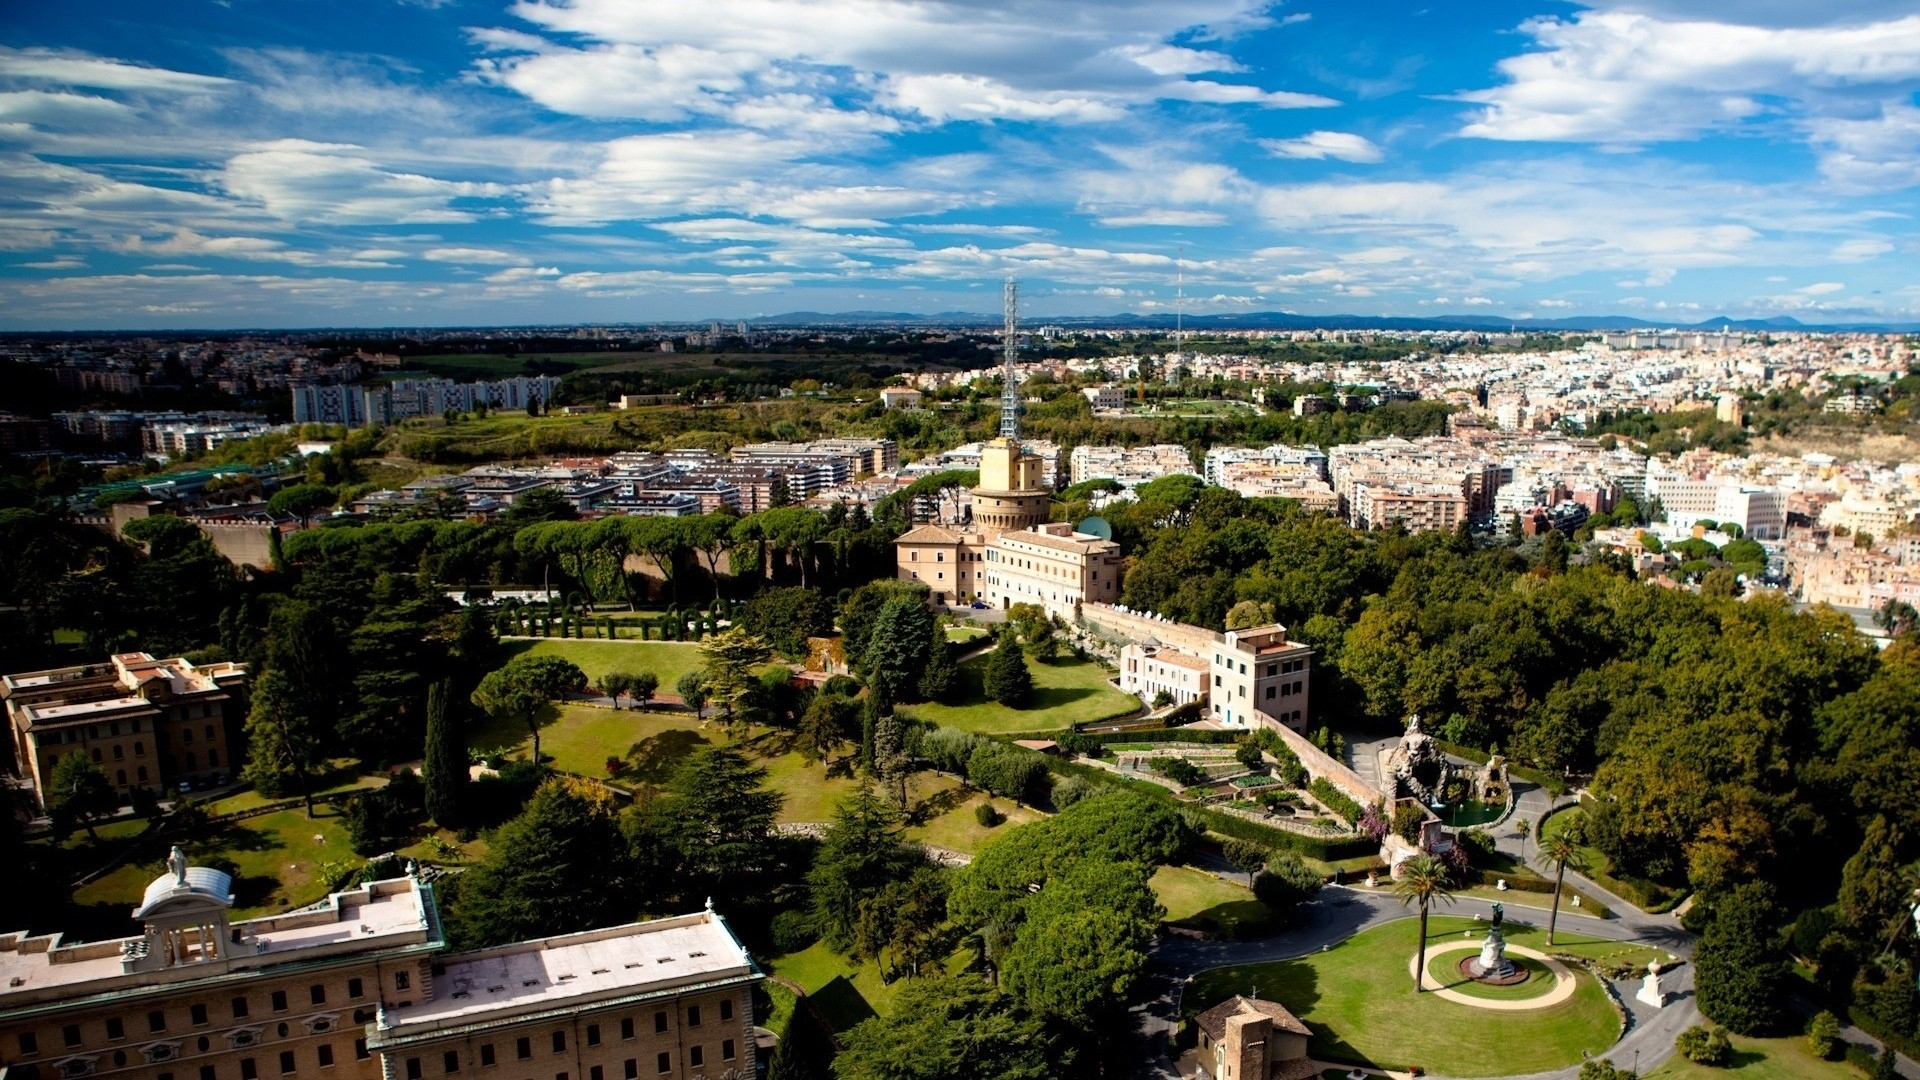 Res: 1920x1080, Urban Area, Vatican City, Panorama, Birds Eye View, Residential Area HD  Wallpaper, City Picture, Background and Image